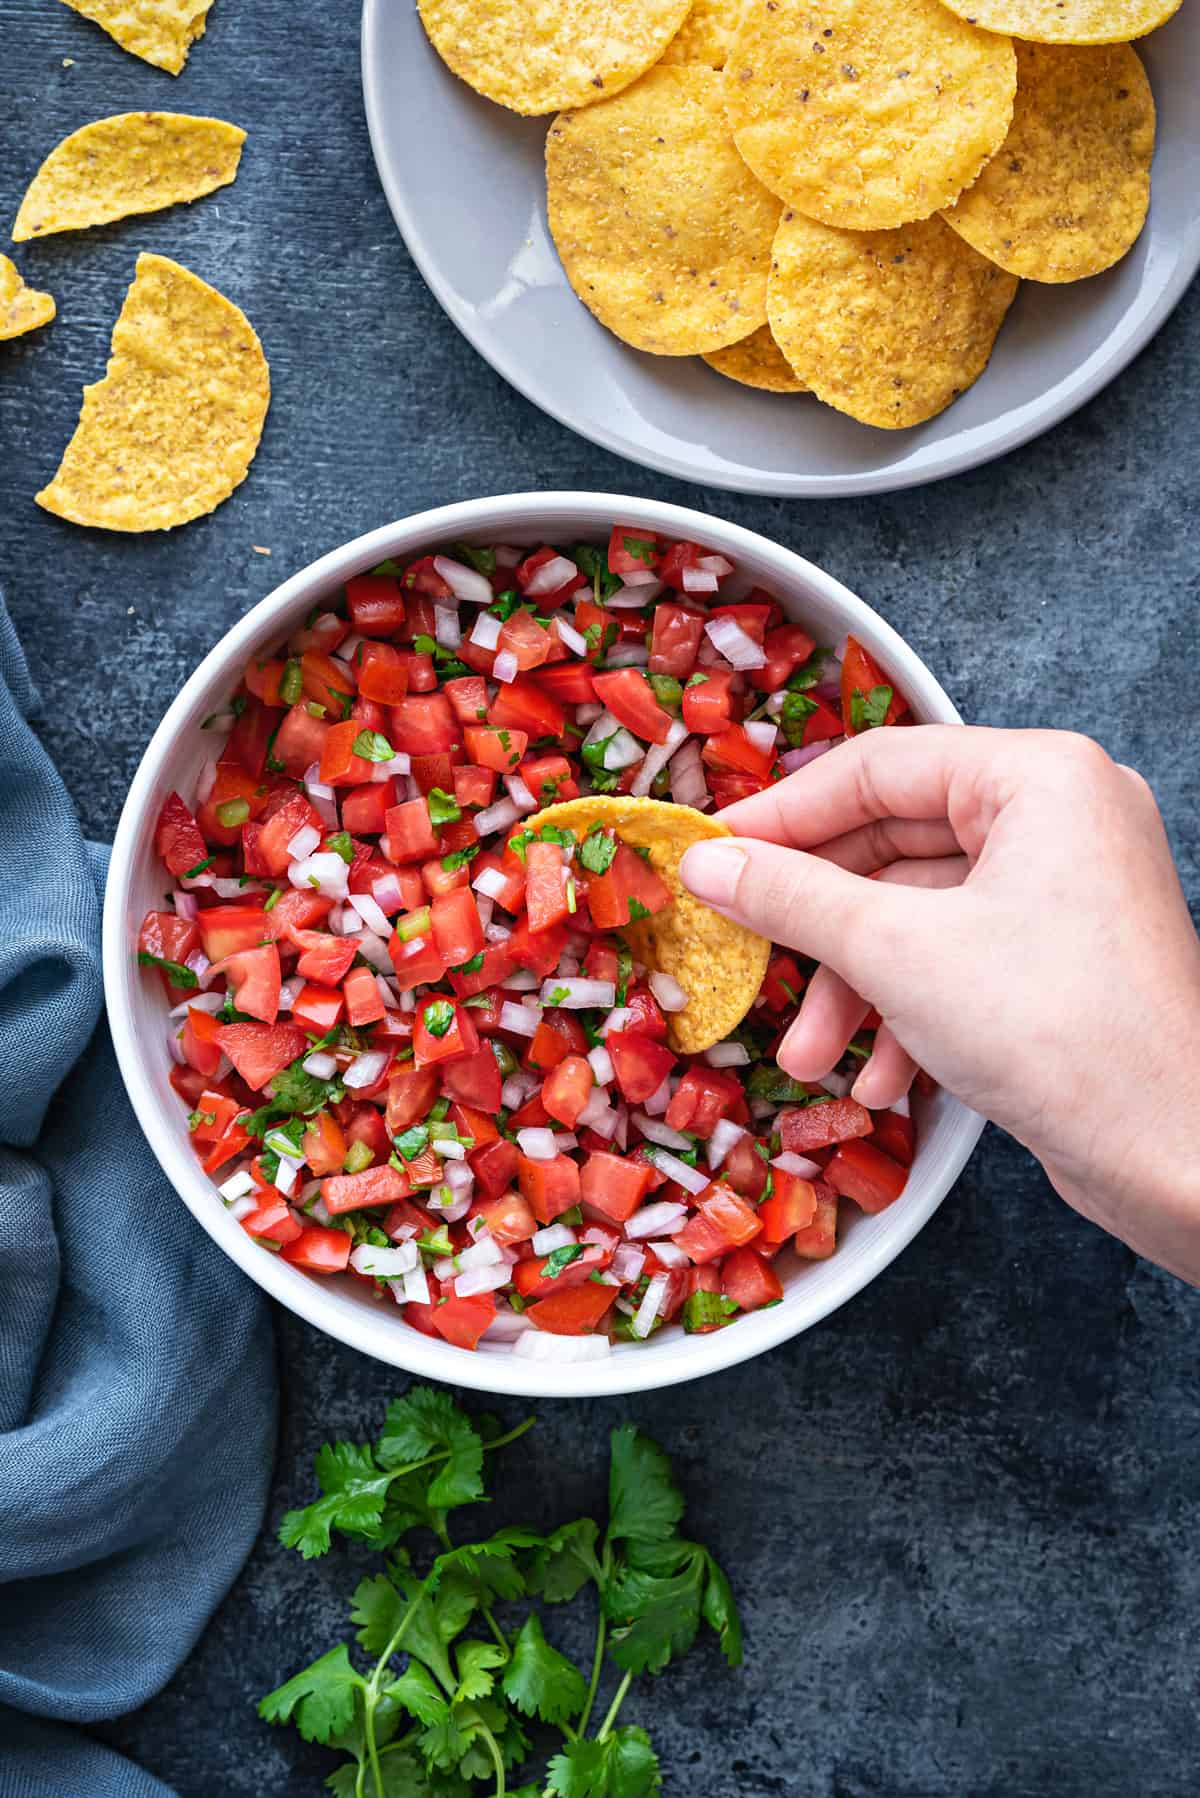 white bowl of pico de gallo salsa on a table with a bowl of tortilla chips